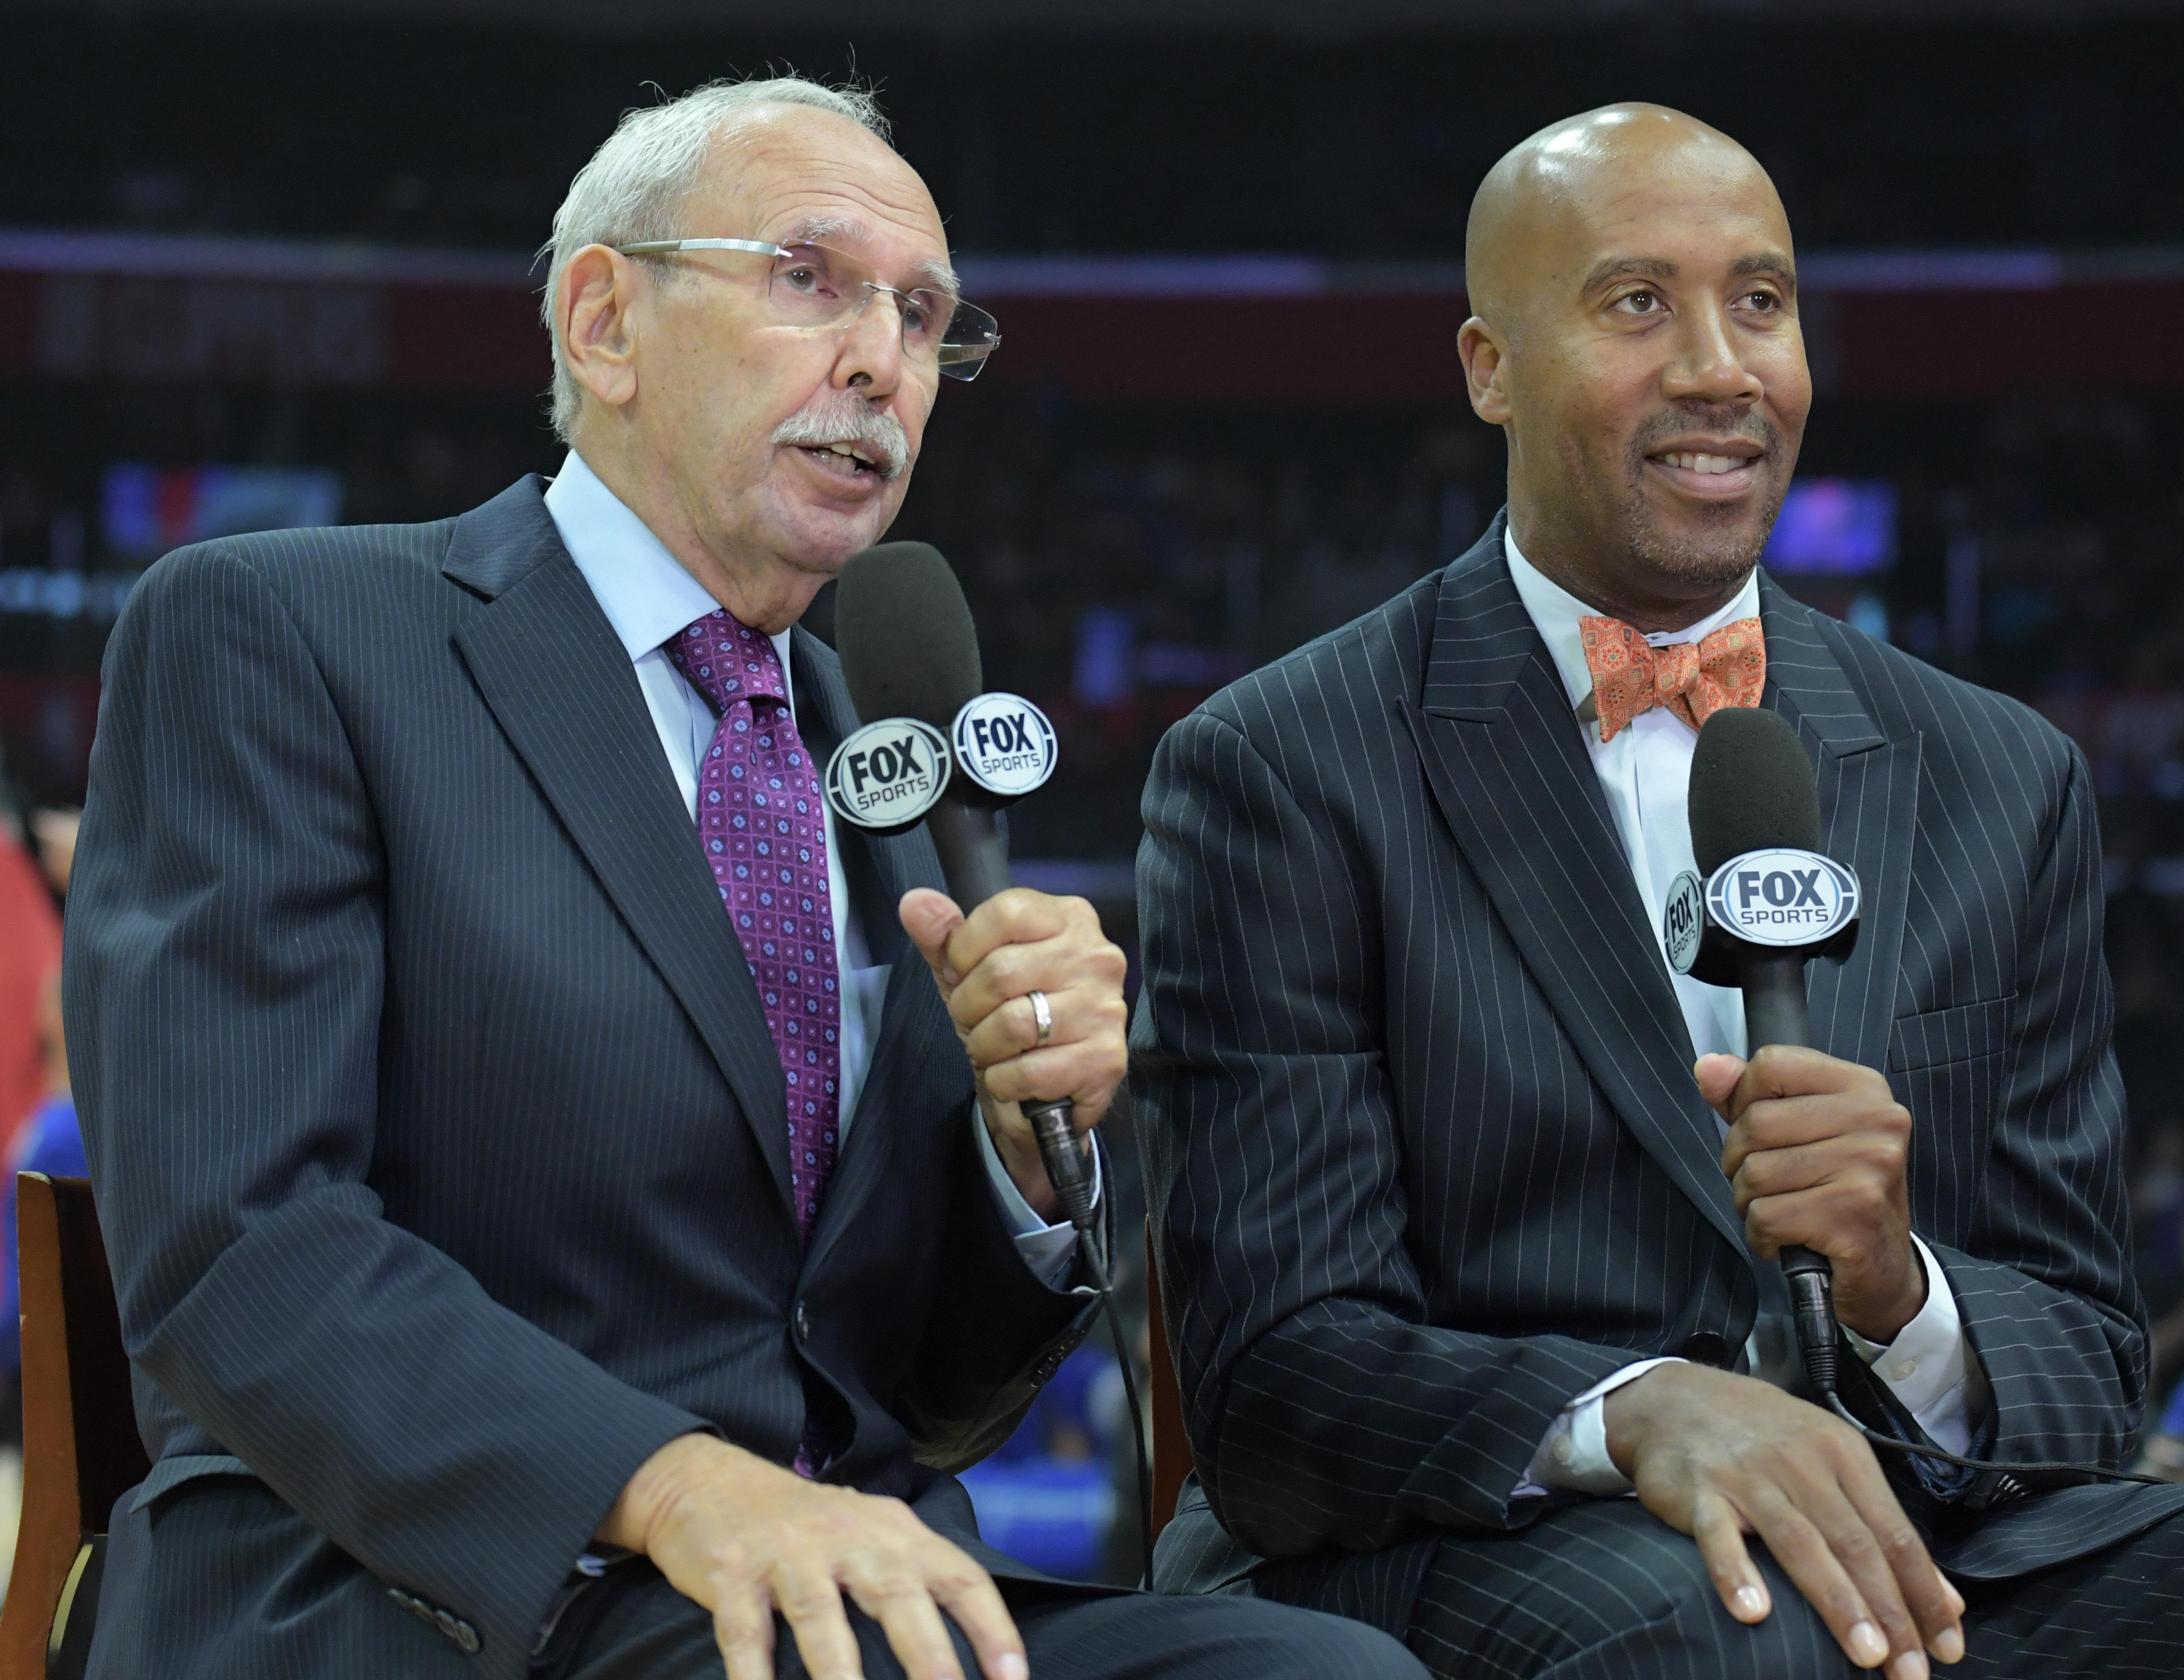 Clippers don't renew TV analyst Bruce Bowen's contract after Kawhi Leonard comments